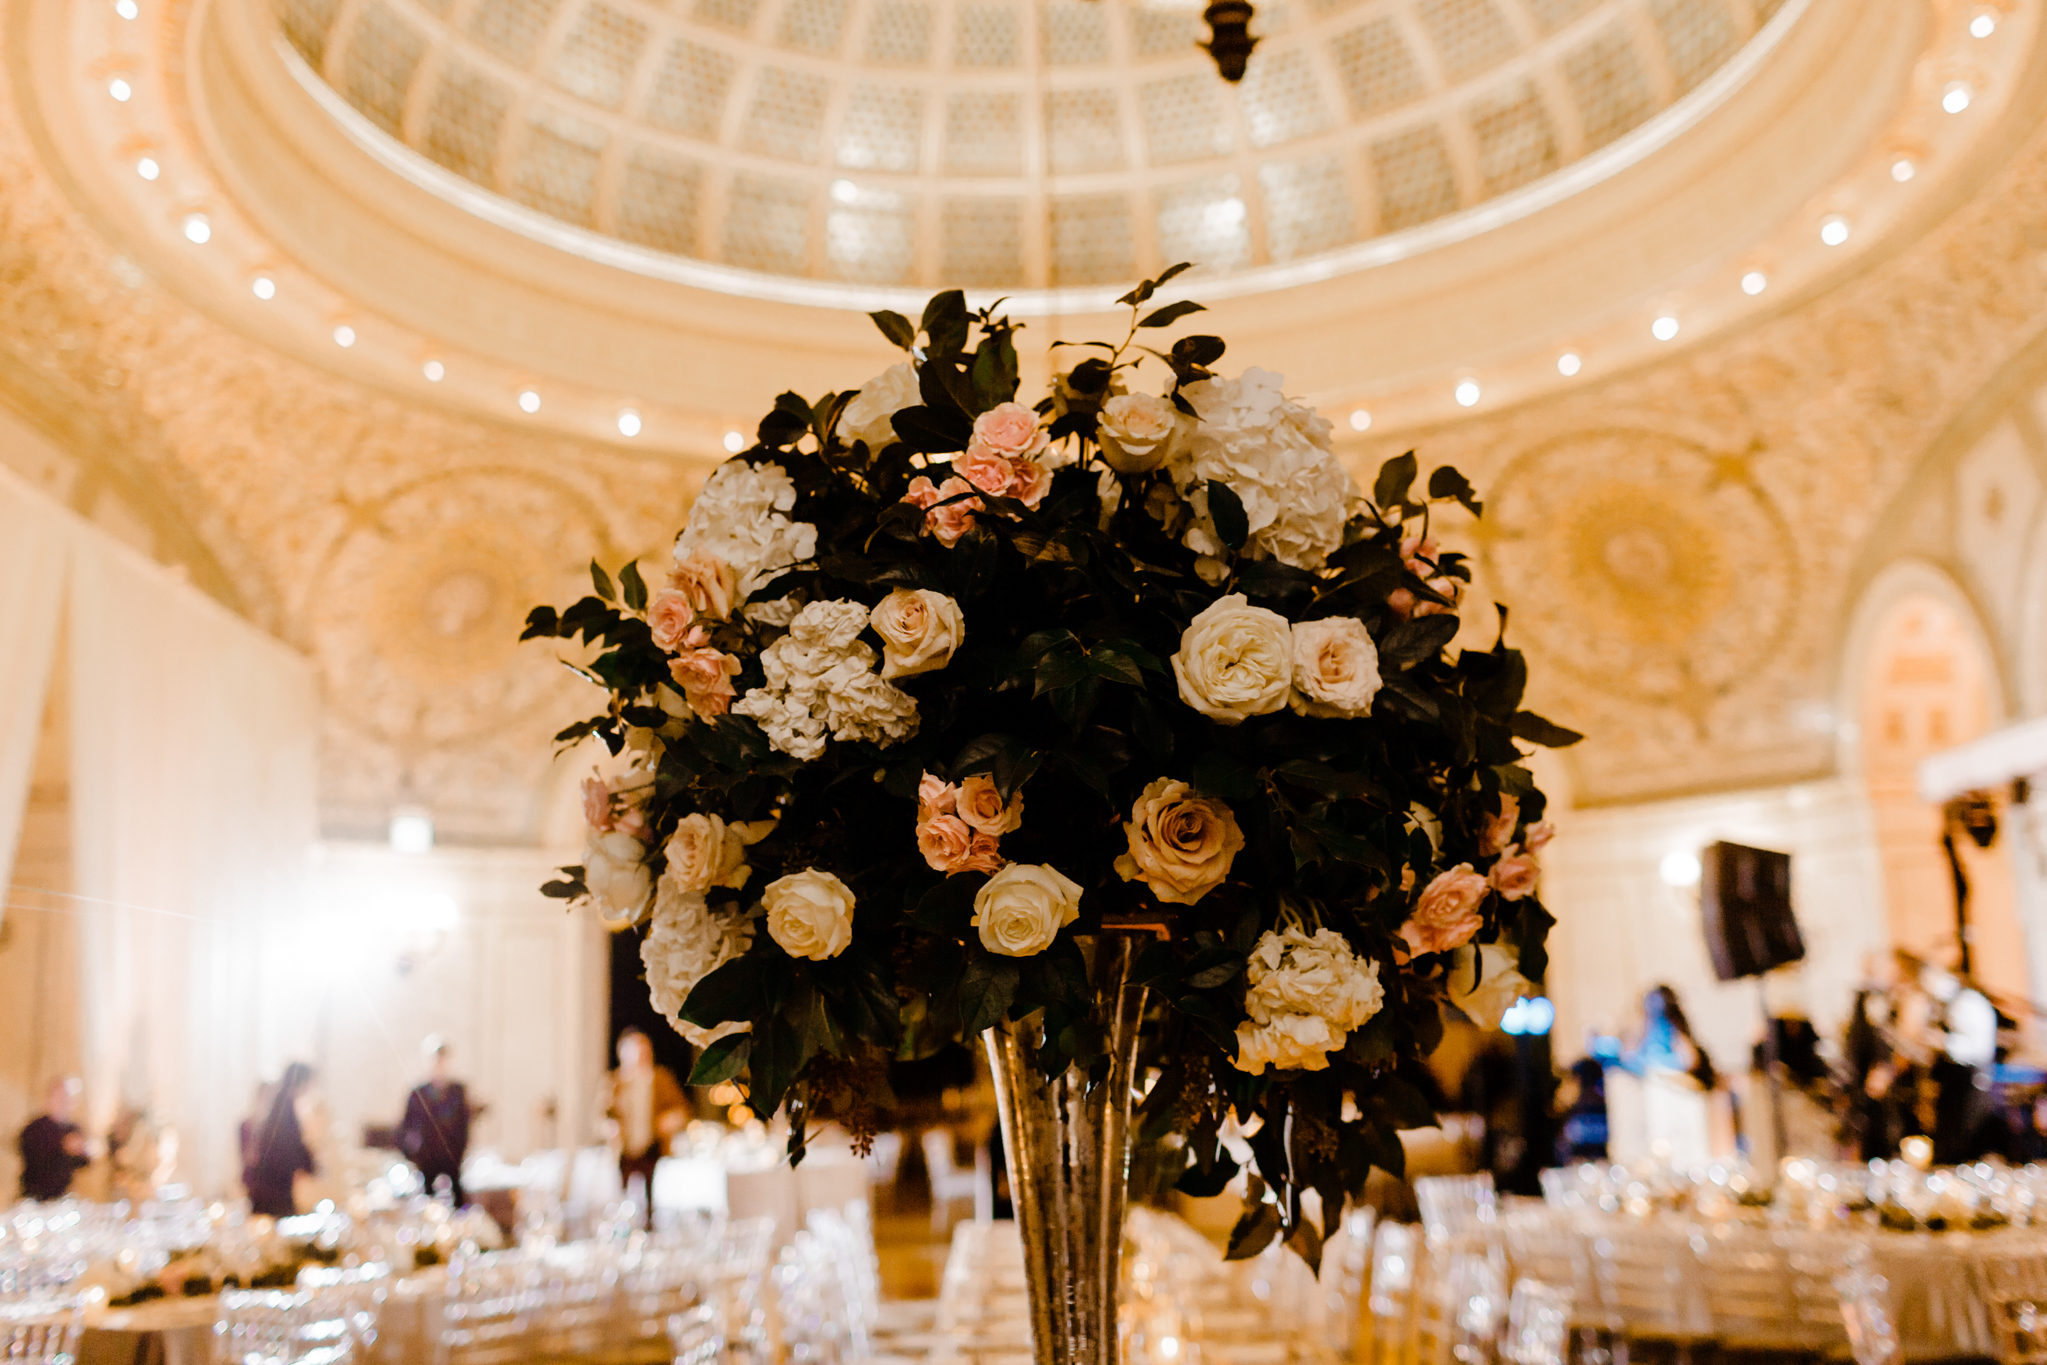 Floral centerpiece under Tiffany dome